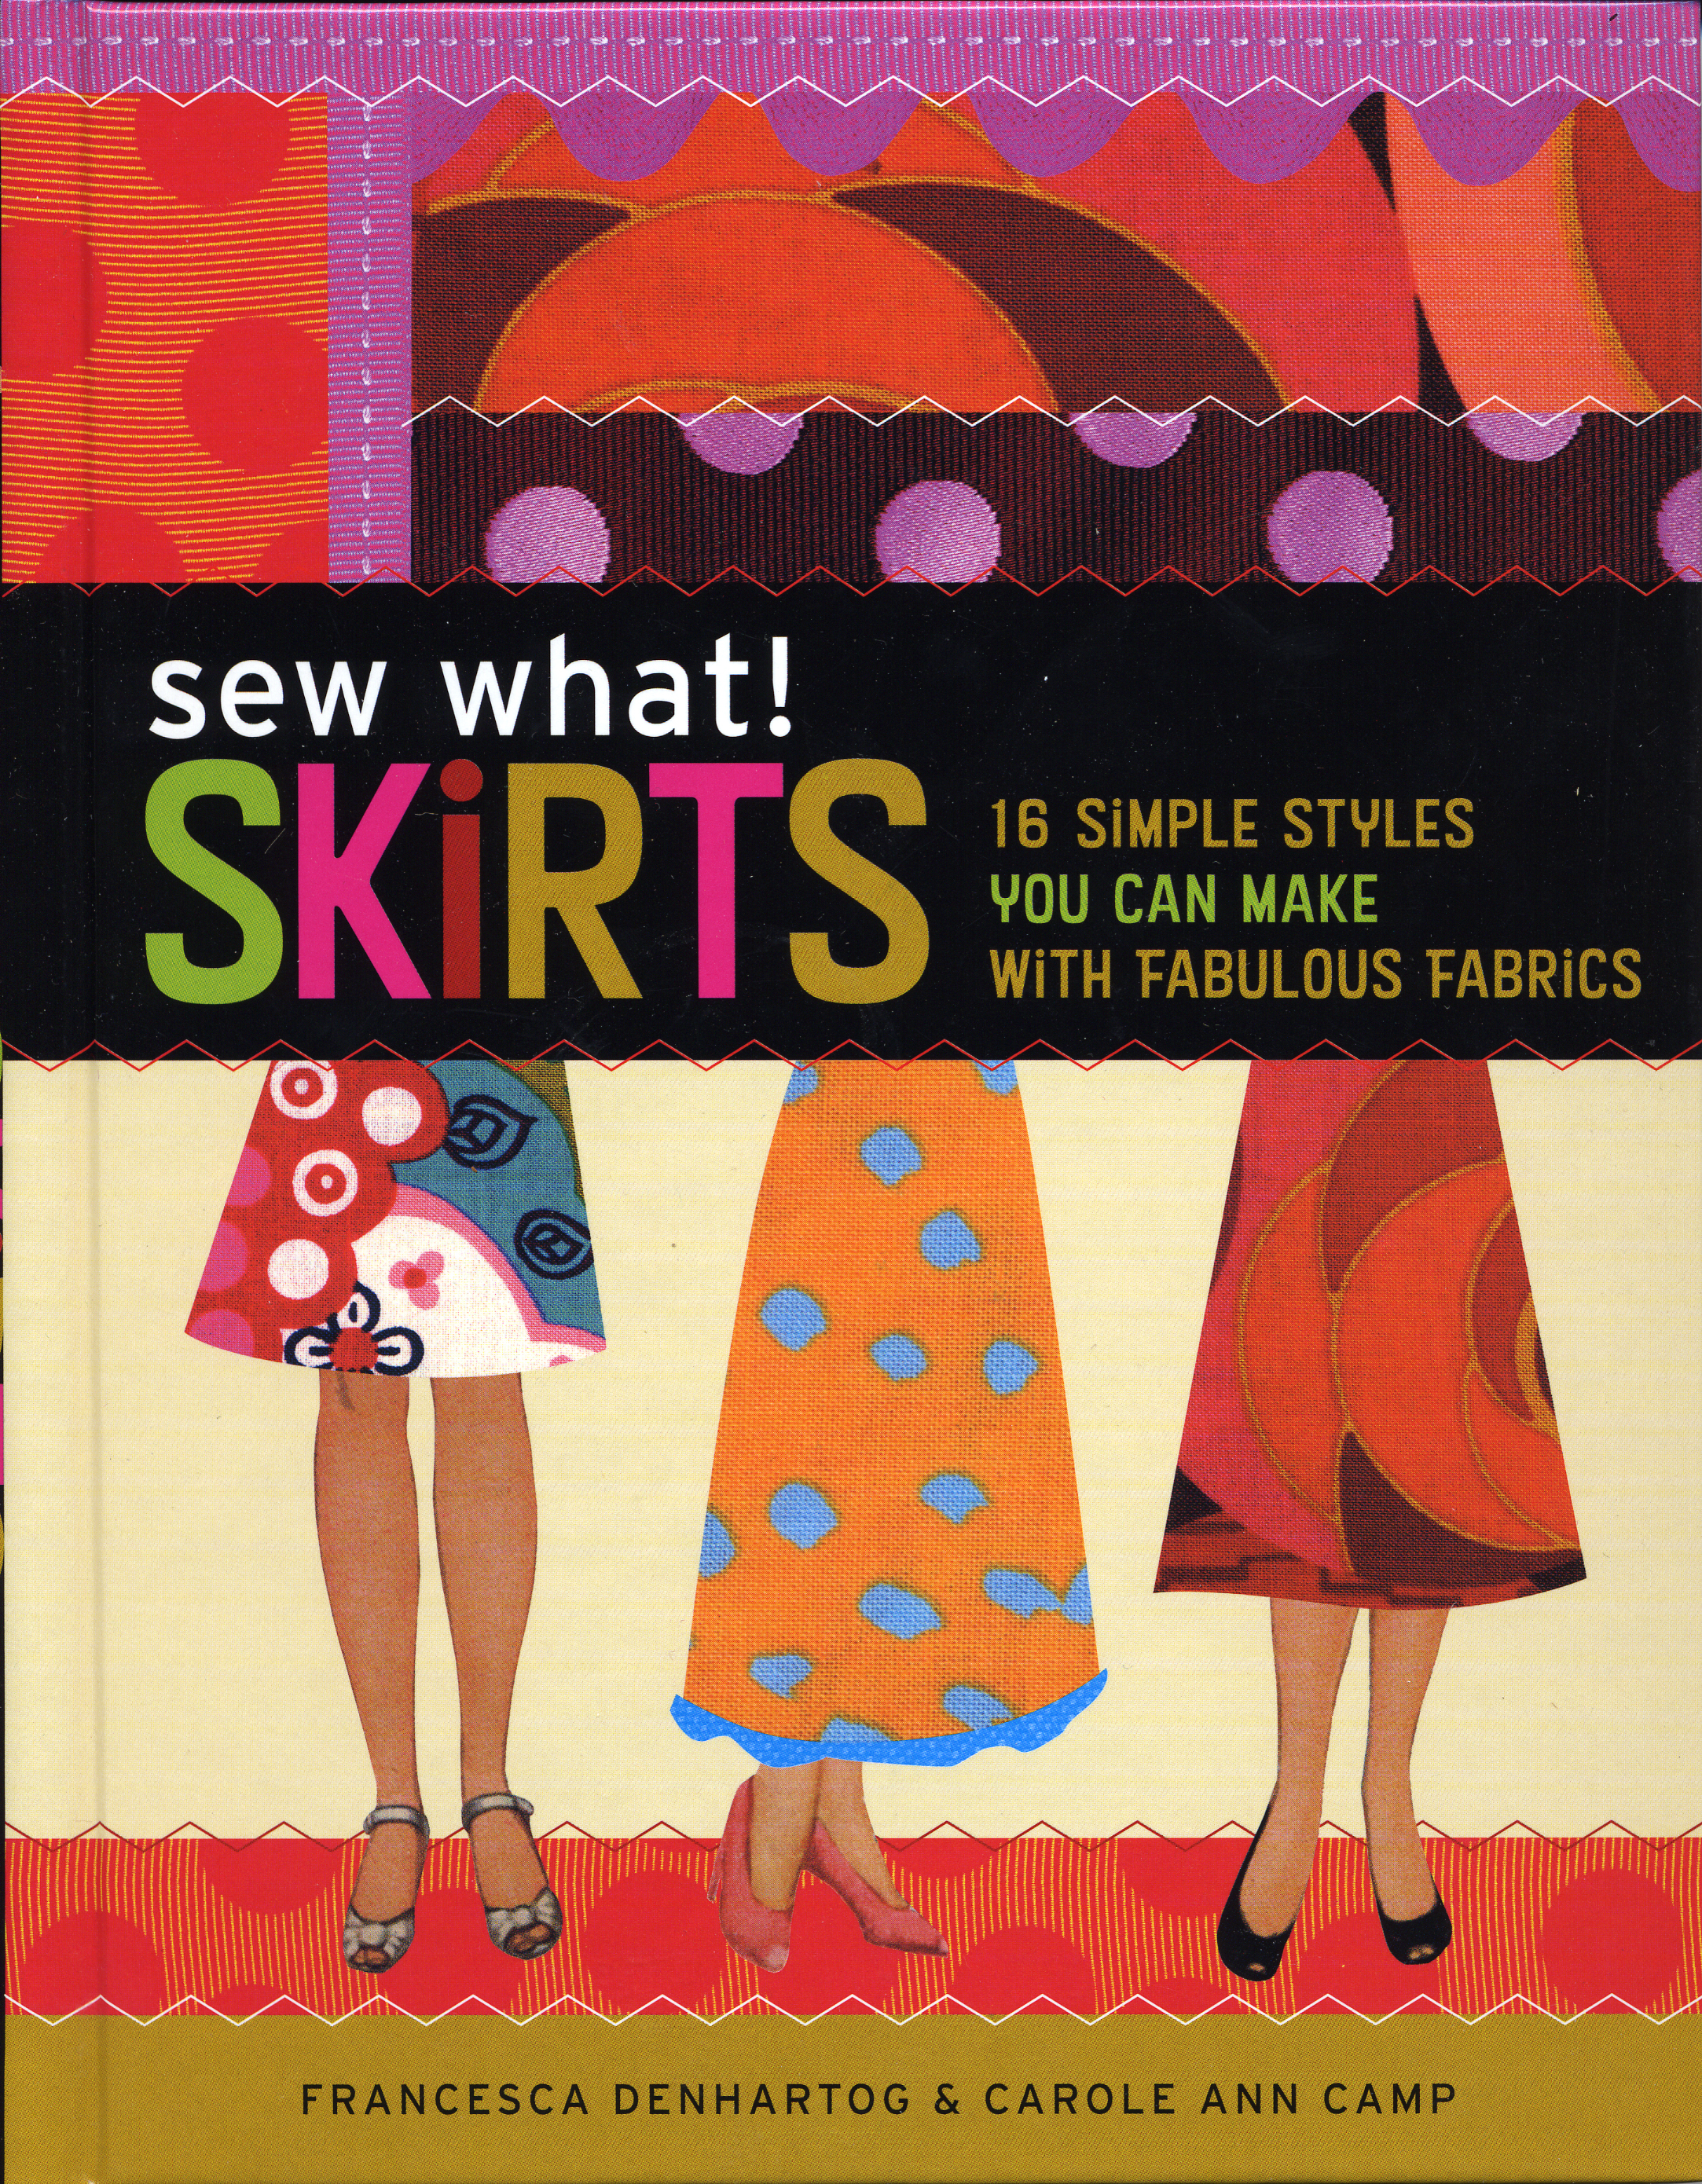 Sew What! Skirts 16 Simple Styles You Can Make with Fabulous Fabrics - Francesca DenHartog